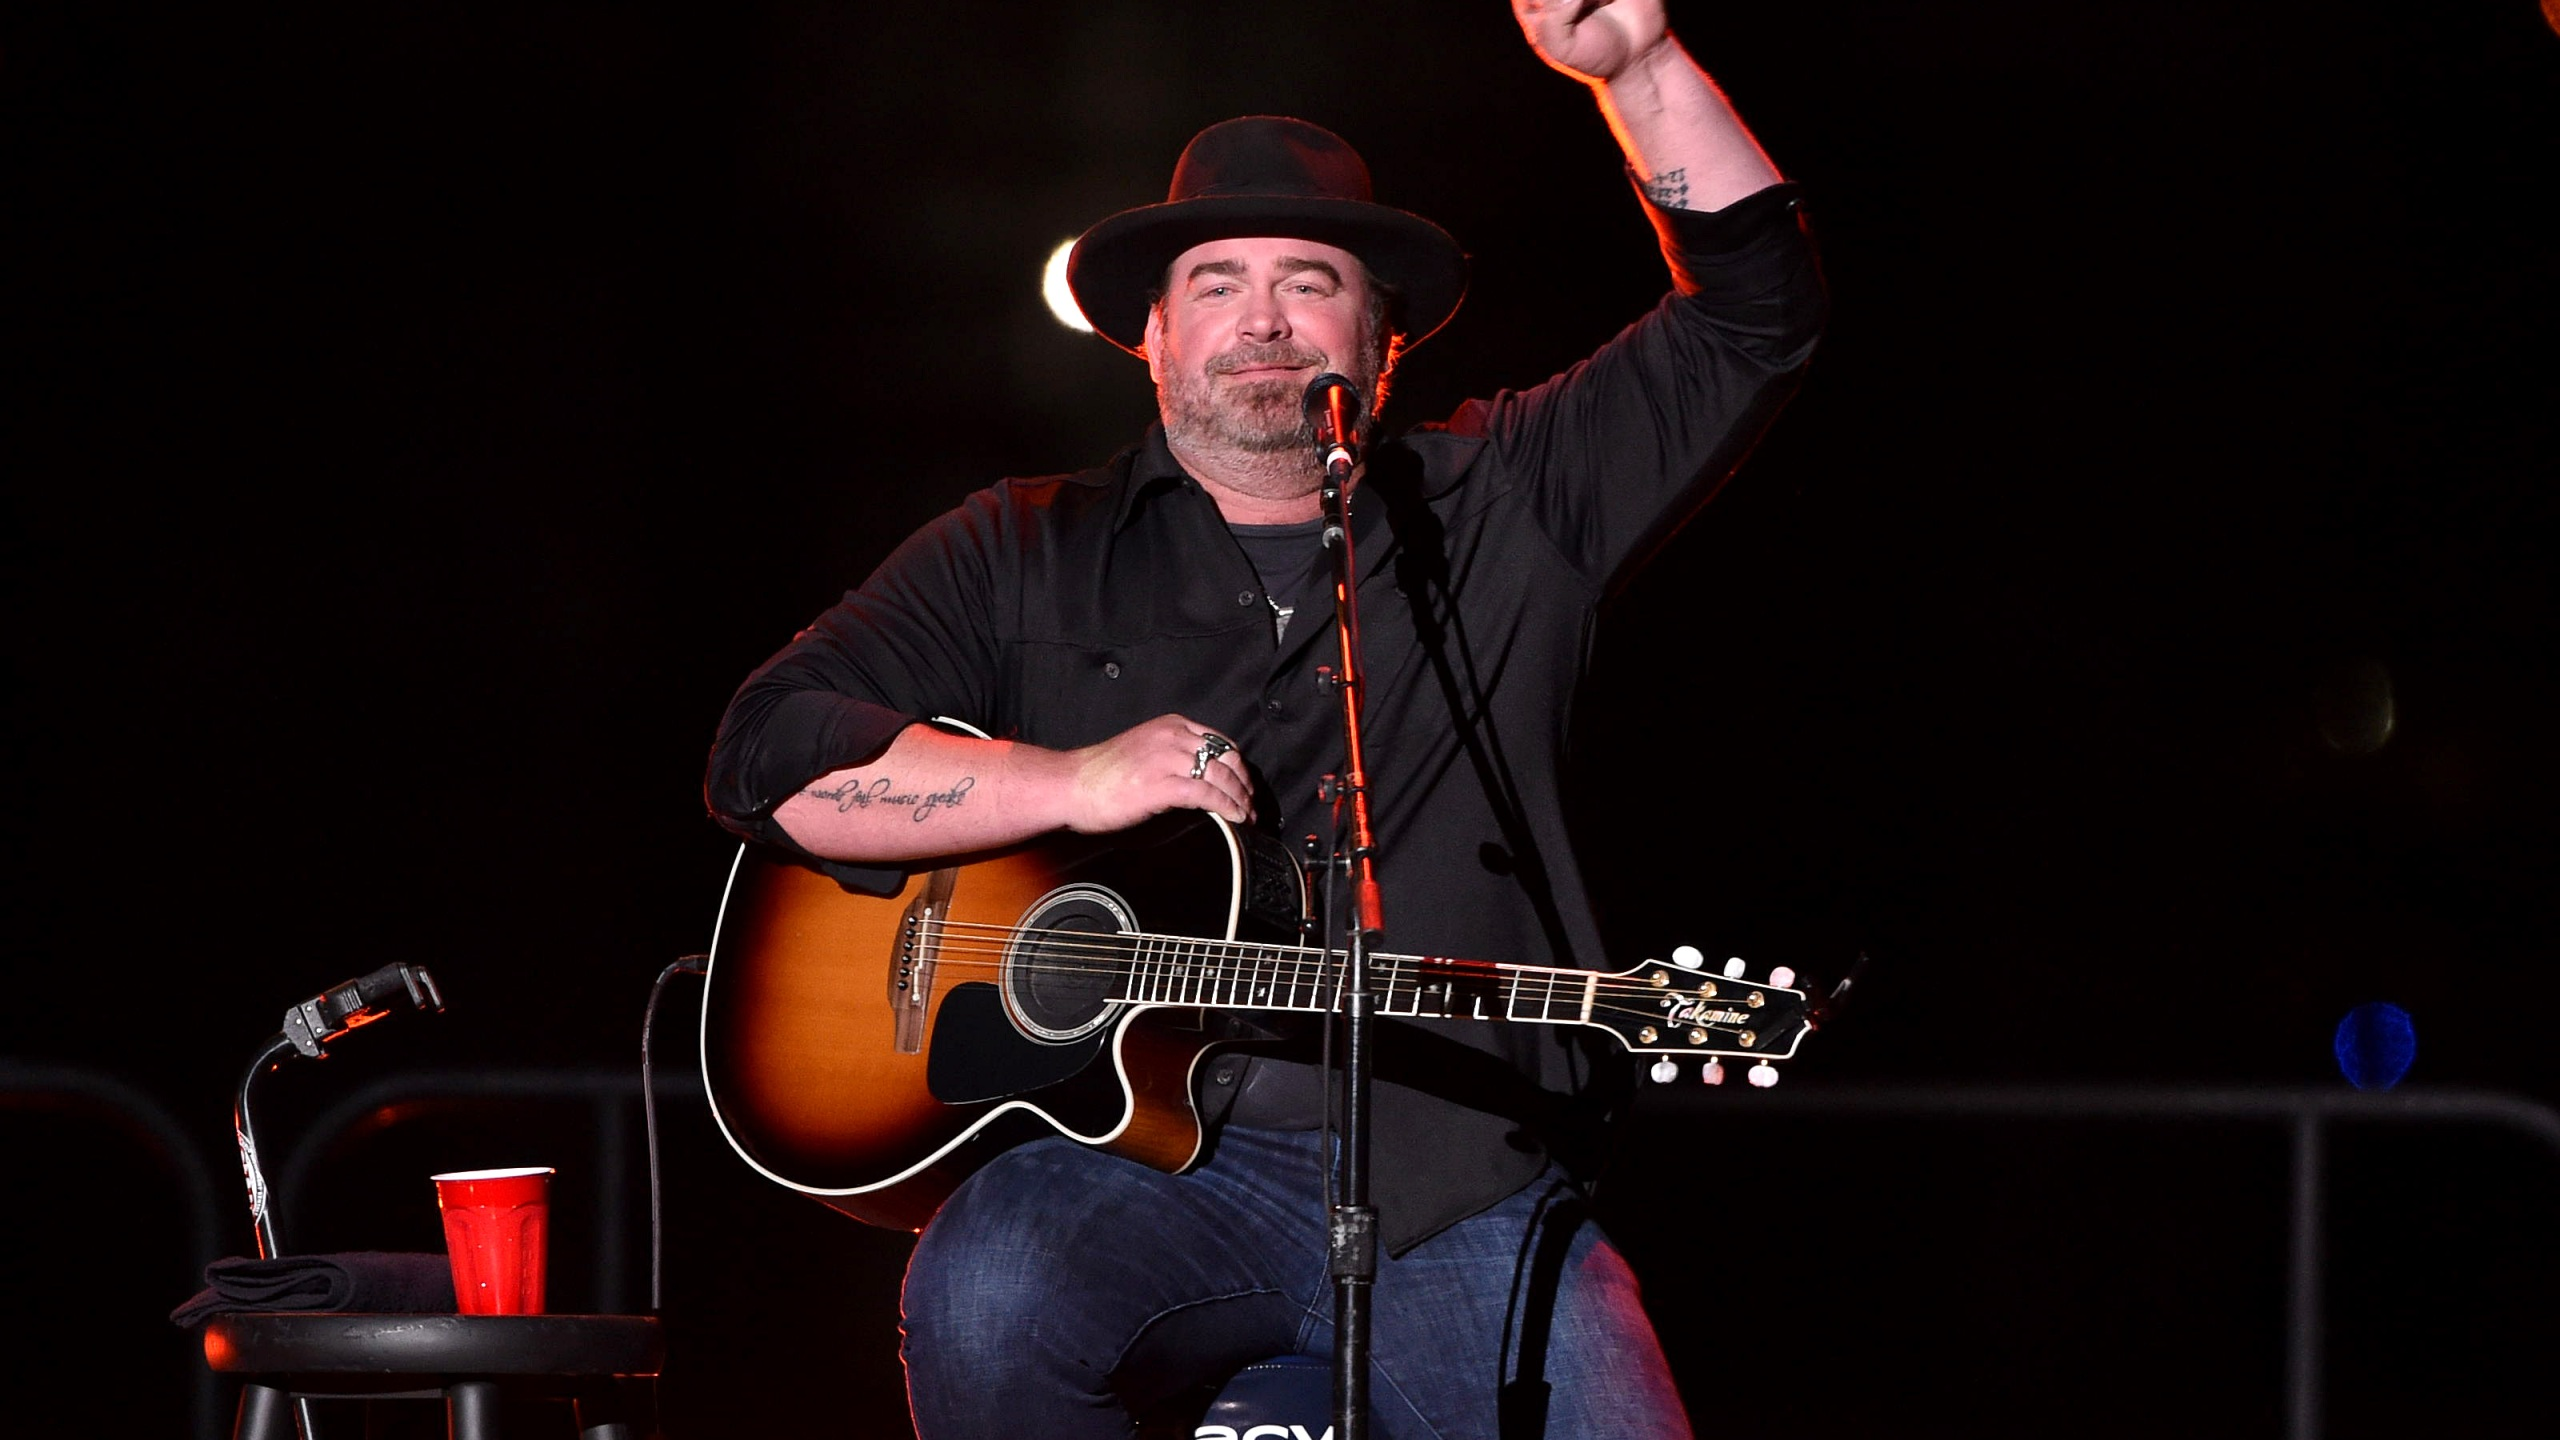 NEW YORK, NEW YORK - SEPTEMBER 11: Lee Brice performs onstage at Audacy's Stars & Strings Concert Benefiting 9/11 at Pier 17 on September 11, 2021 in New York City. (Photo by Bryan Bedder/Getty Images for Audacy )